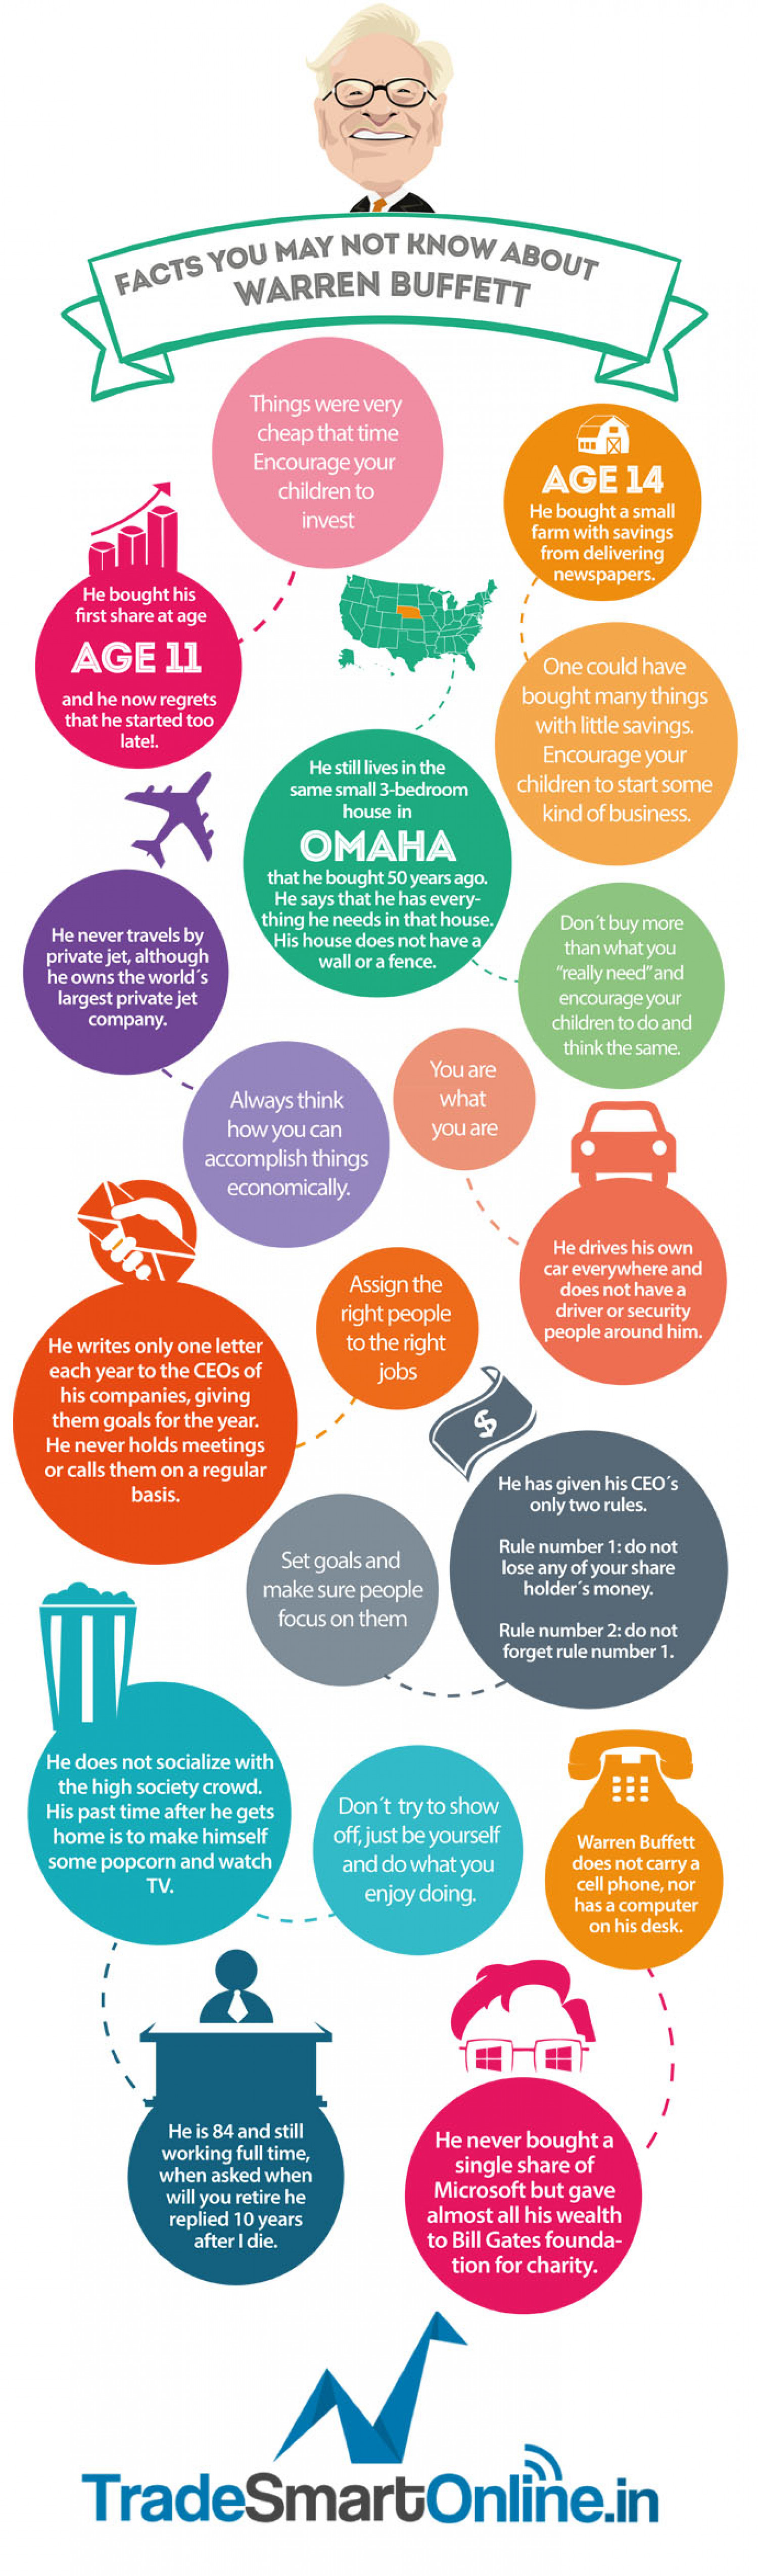 Facts You May Not Know About Warren Buffett Infographic